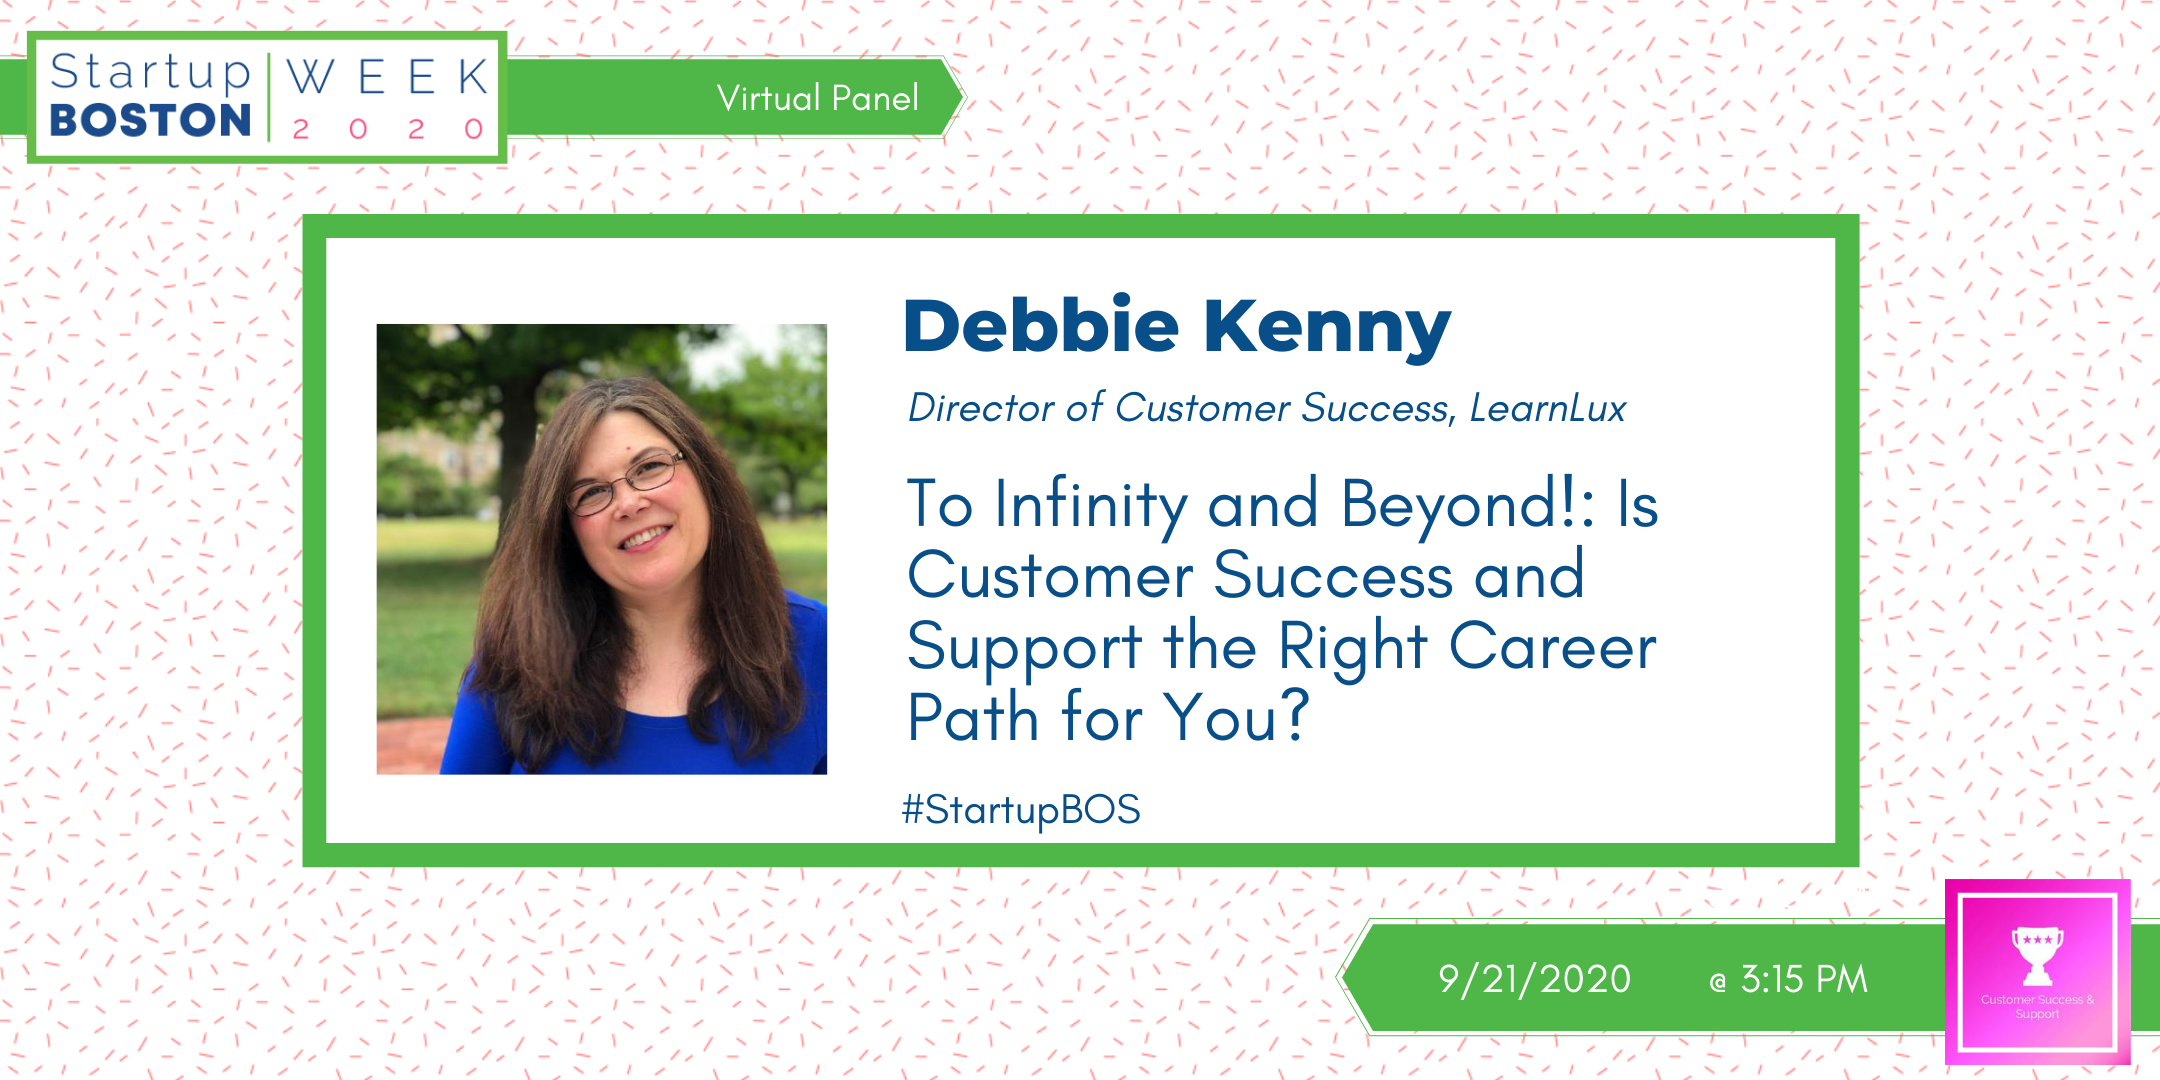 Debbie Kenny, Director of Customer Success at LearnLux Financial Wellbeing Company